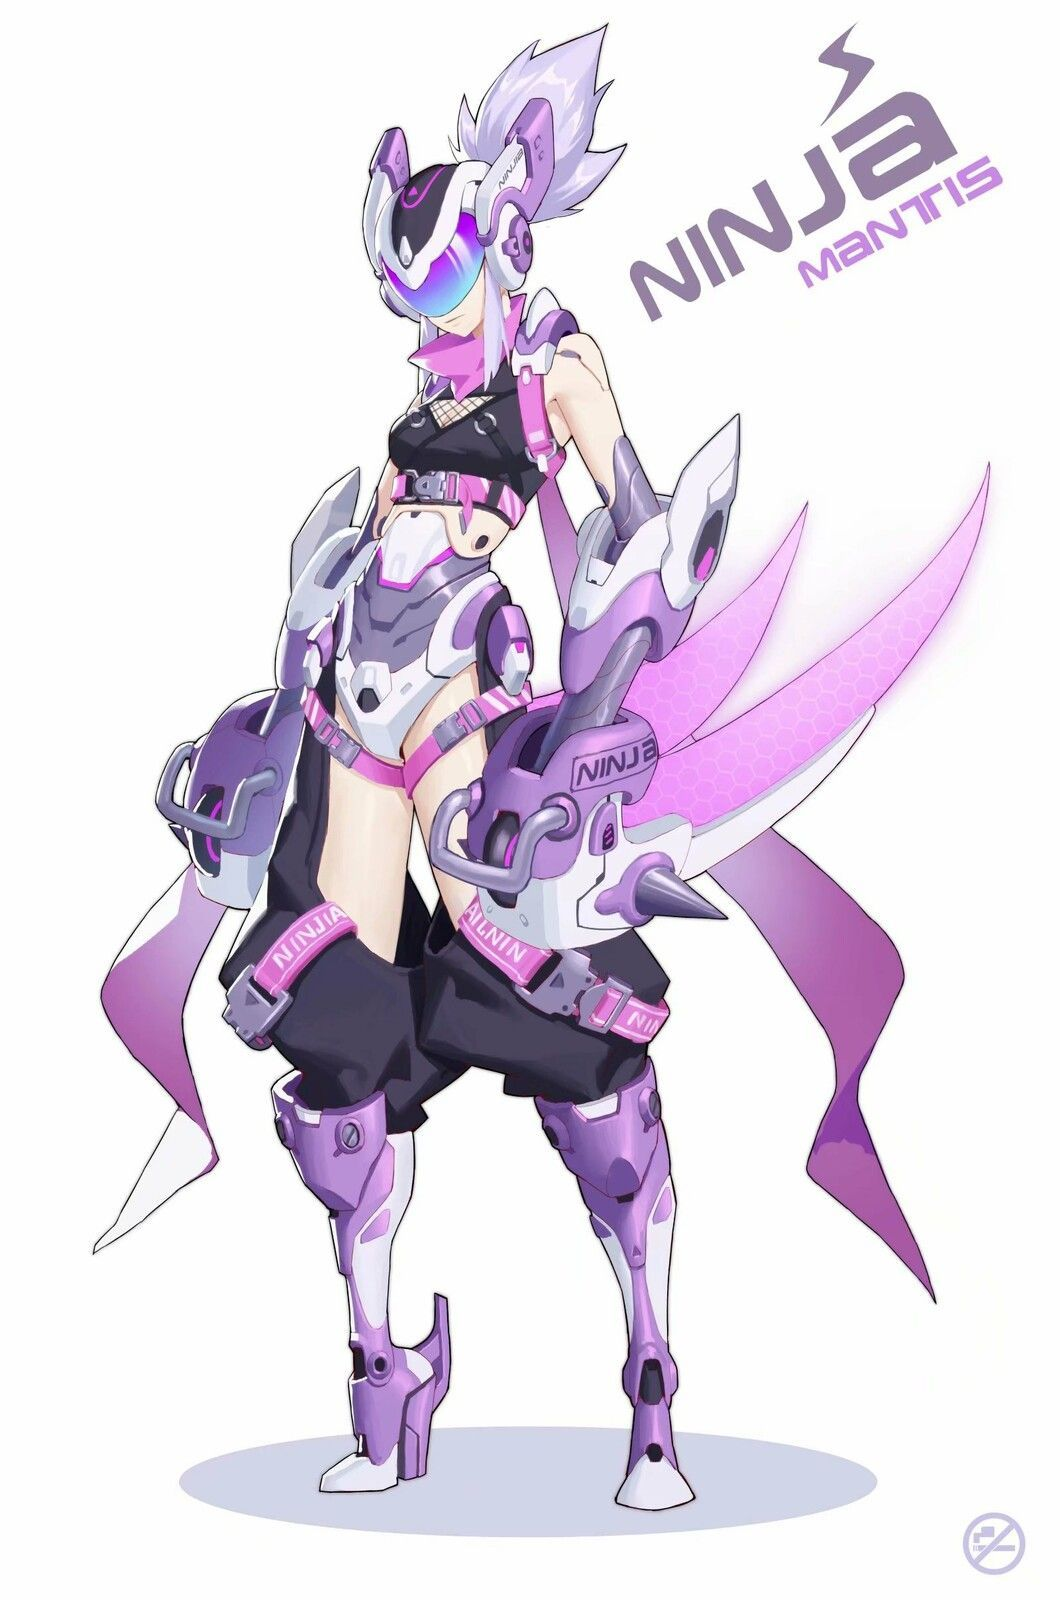 Character Design Character Design Disney Concept Art Illustrations Drawing Tips Pose Reference Zb In 2020 Anime Character Design Character Art Fantasy Character Design